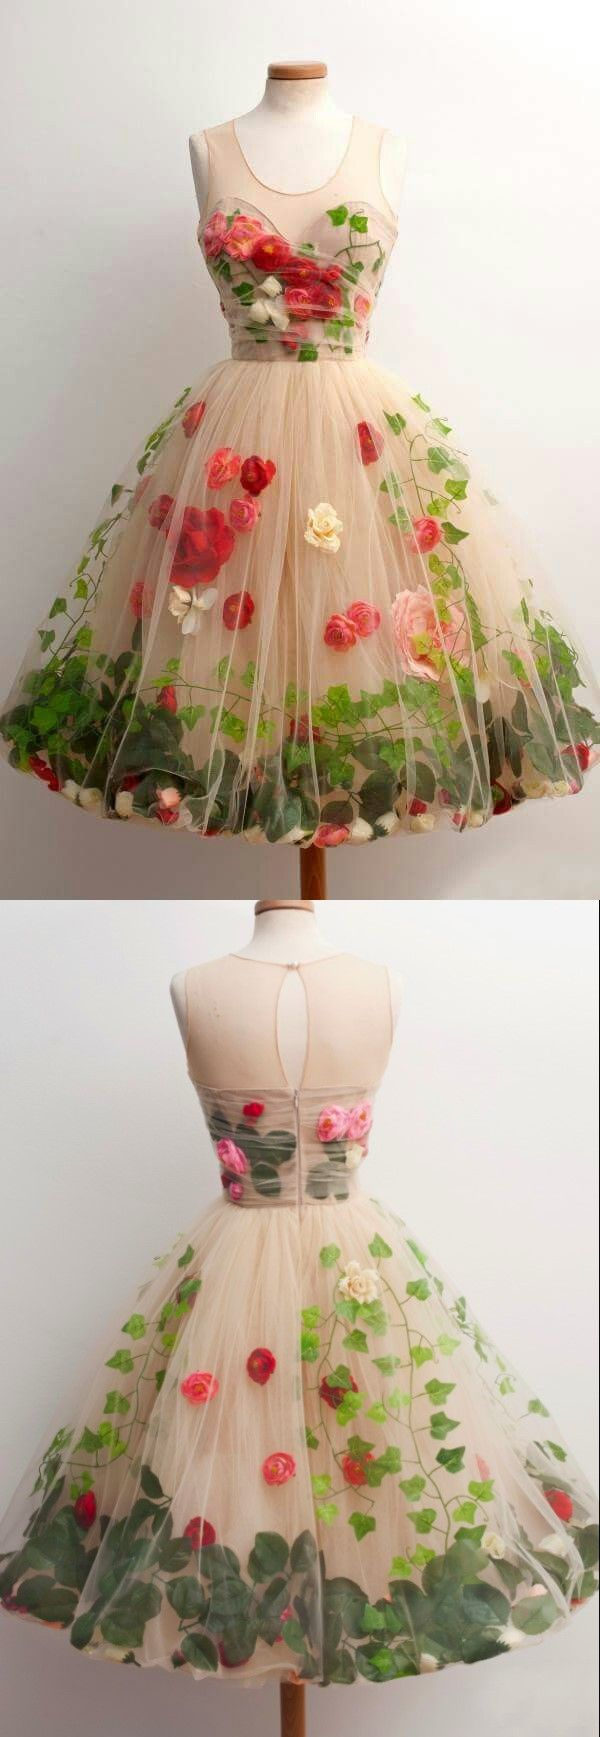 Vintage Homecoming dress,Short Elegant Champagne Prom Dress, Knee-length Party Dress with Flower